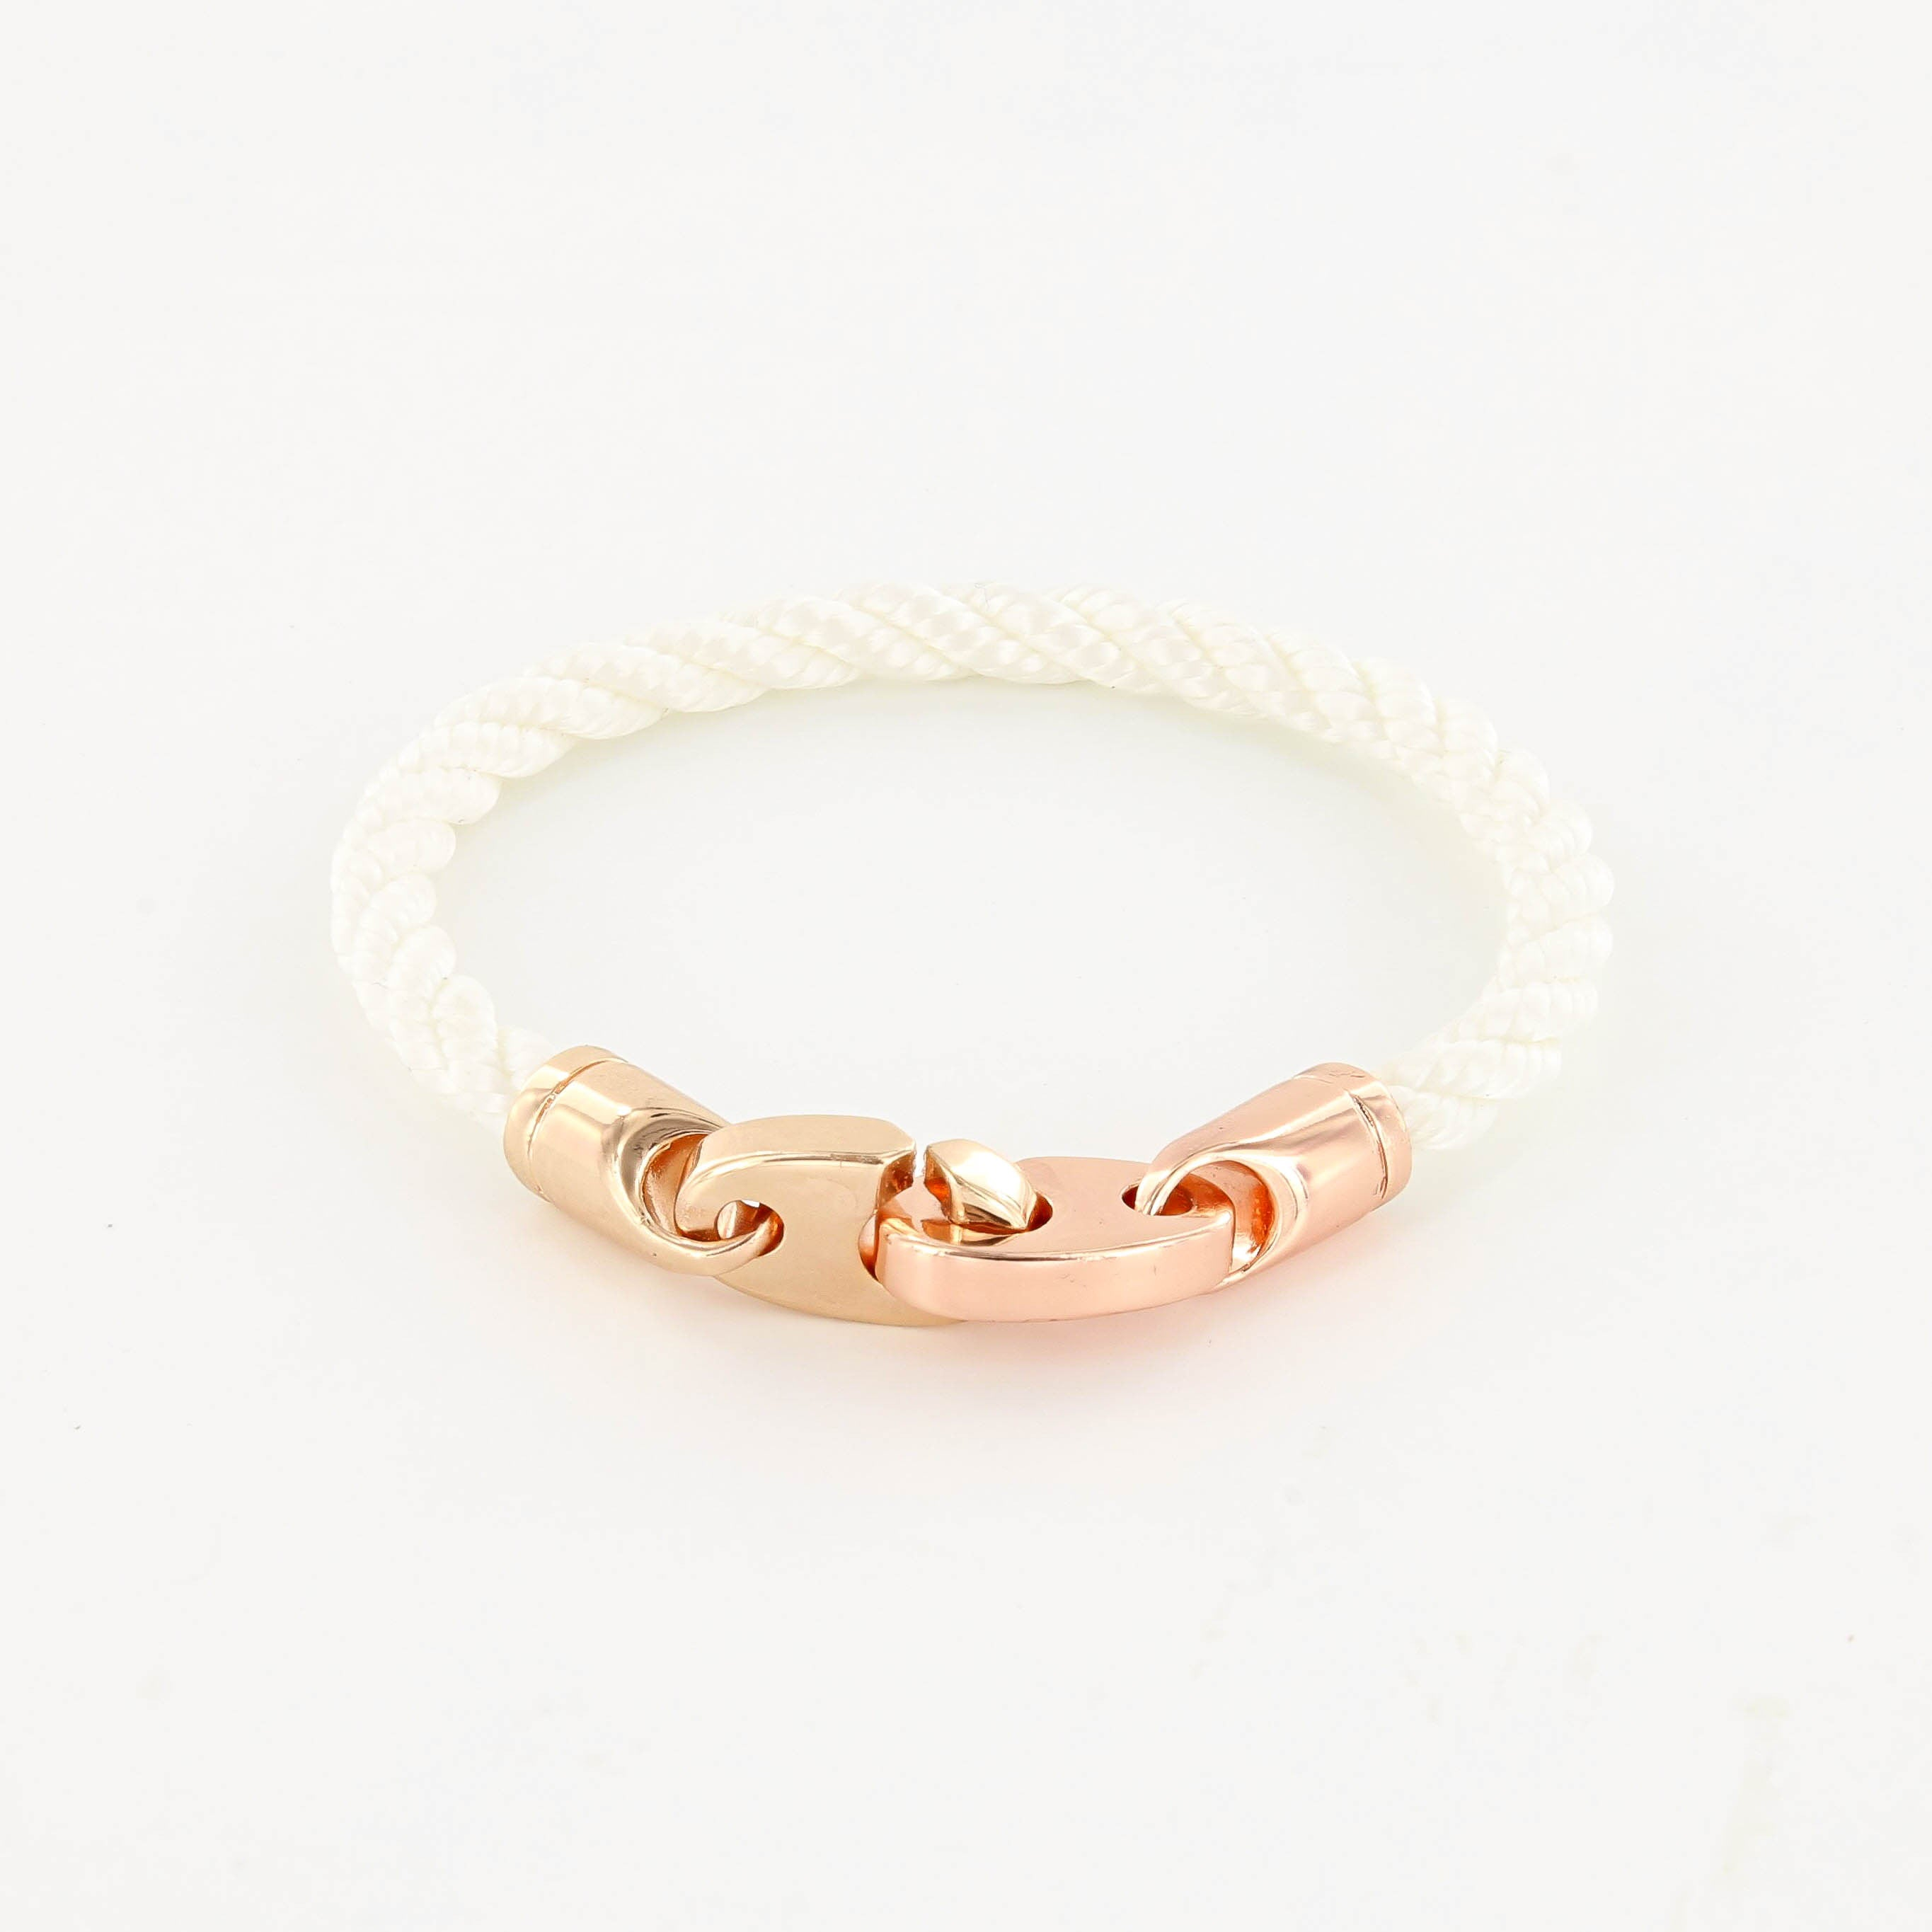 lur single guys The classic rope bracelet with a feminine touch our signature brummels in rose gold are bound to lure all the right kinds of attention solid brass with polished rose gold plated hardware polyster twisted marine rope.